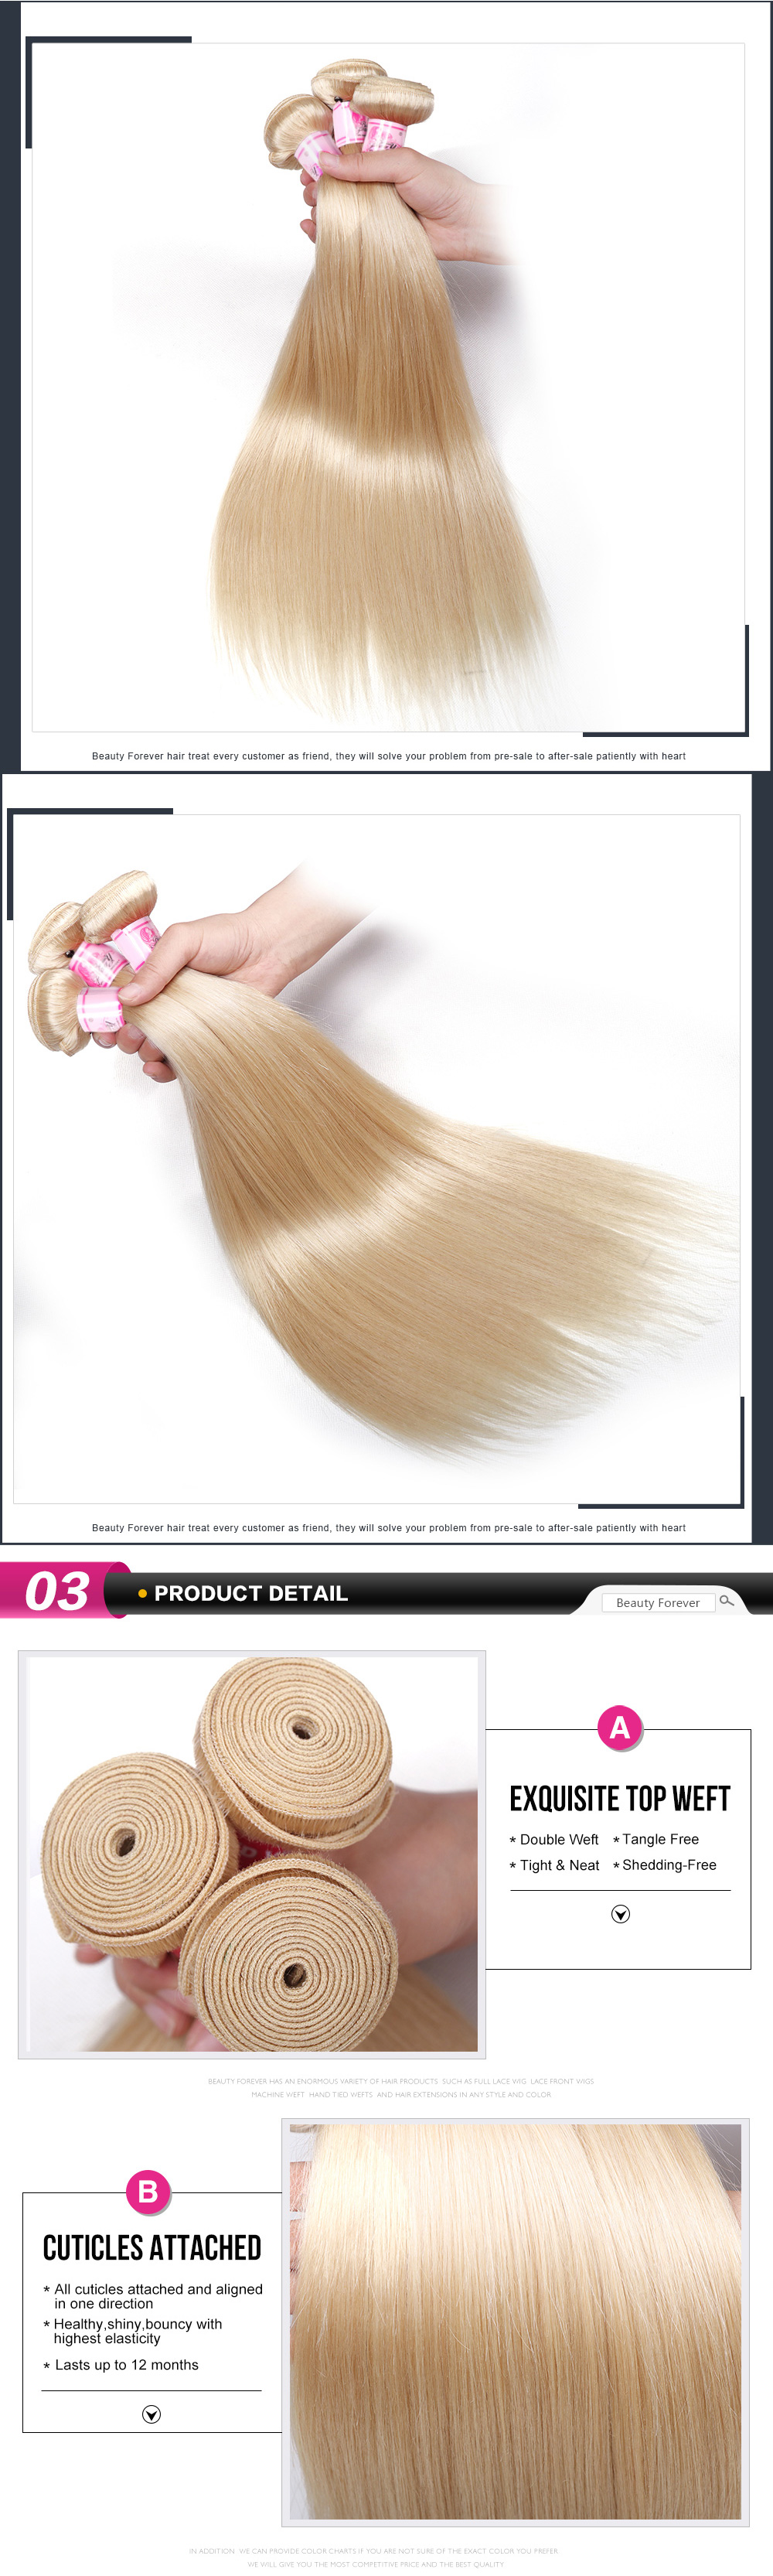 613 blonde hair bundles